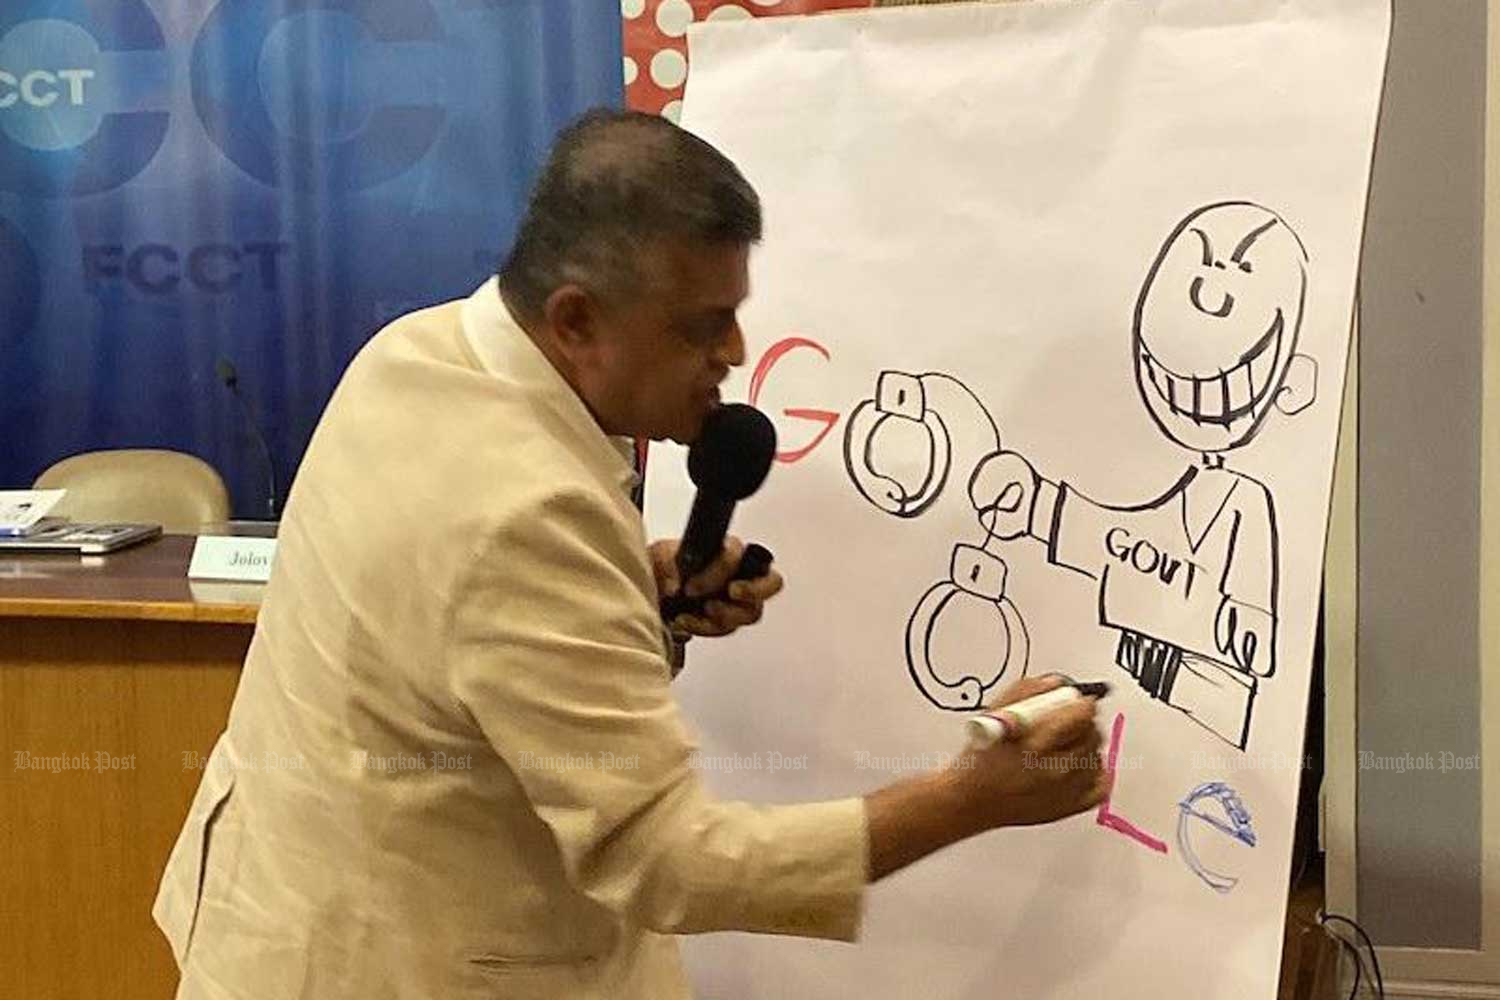 Malaysian cartoonist Zunar helps launch a report by the International Commission of Jurists at the Foreign Correspondents' Club of Thailand. (Photo by Osama Motiwala/ICJ))